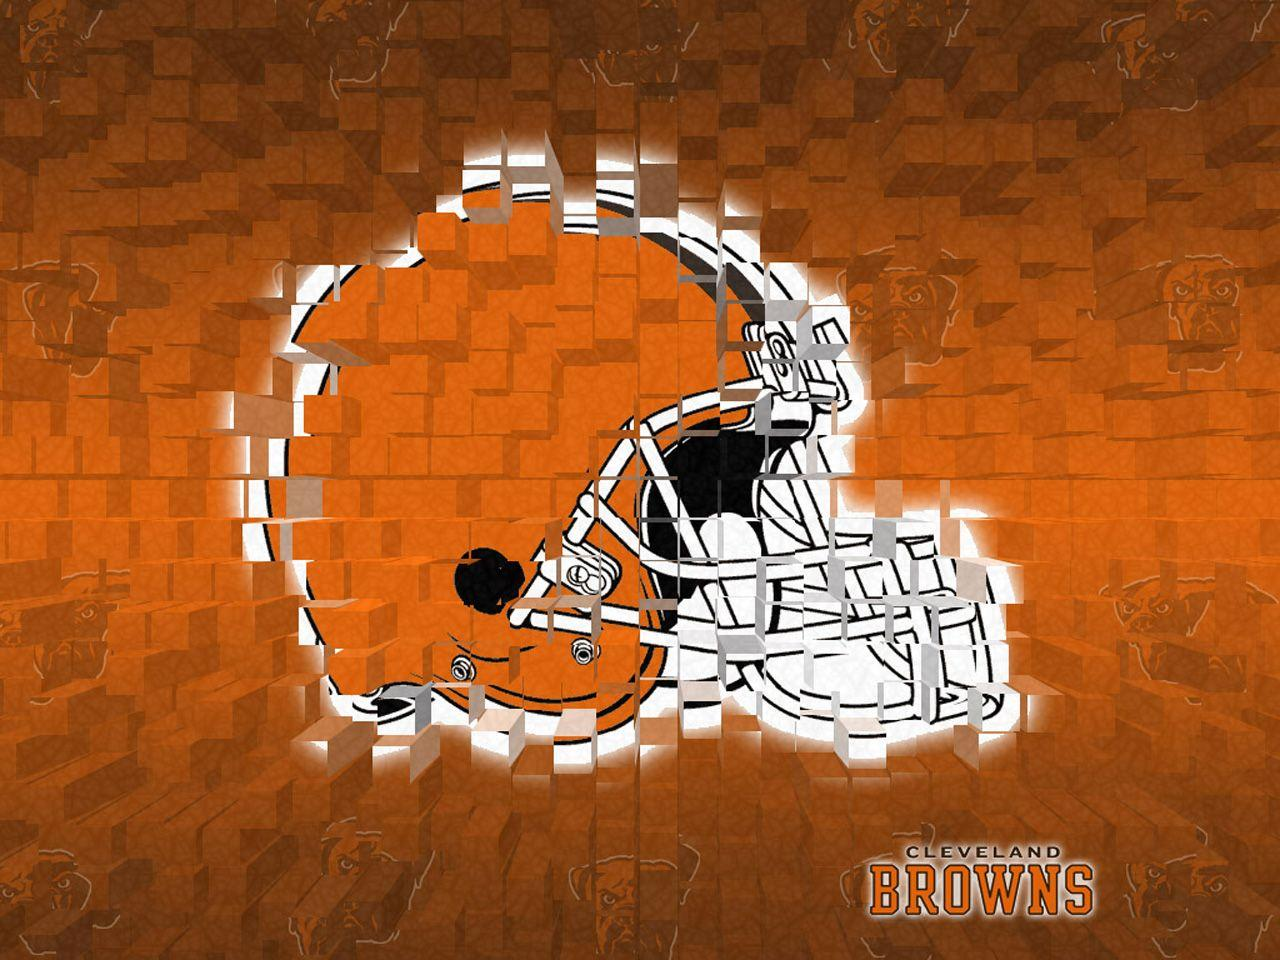 Cleveland Browns images Cleveland Browns Helmet HD wallpaper and ...